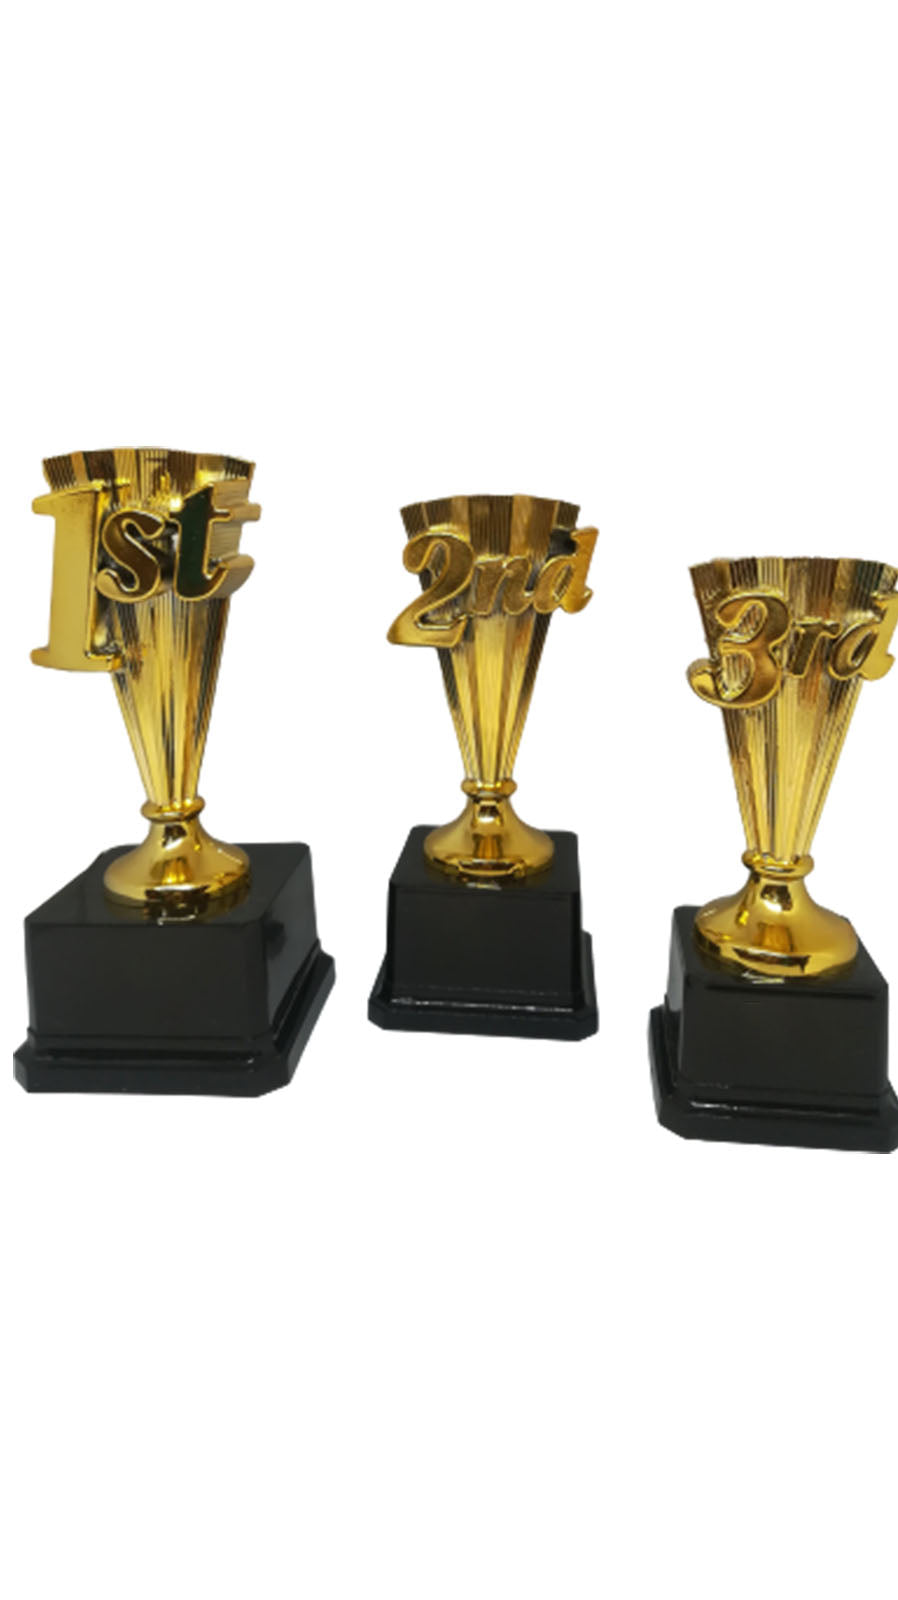 S19-1st, 2nd or 3rd Place Plastic Trophies